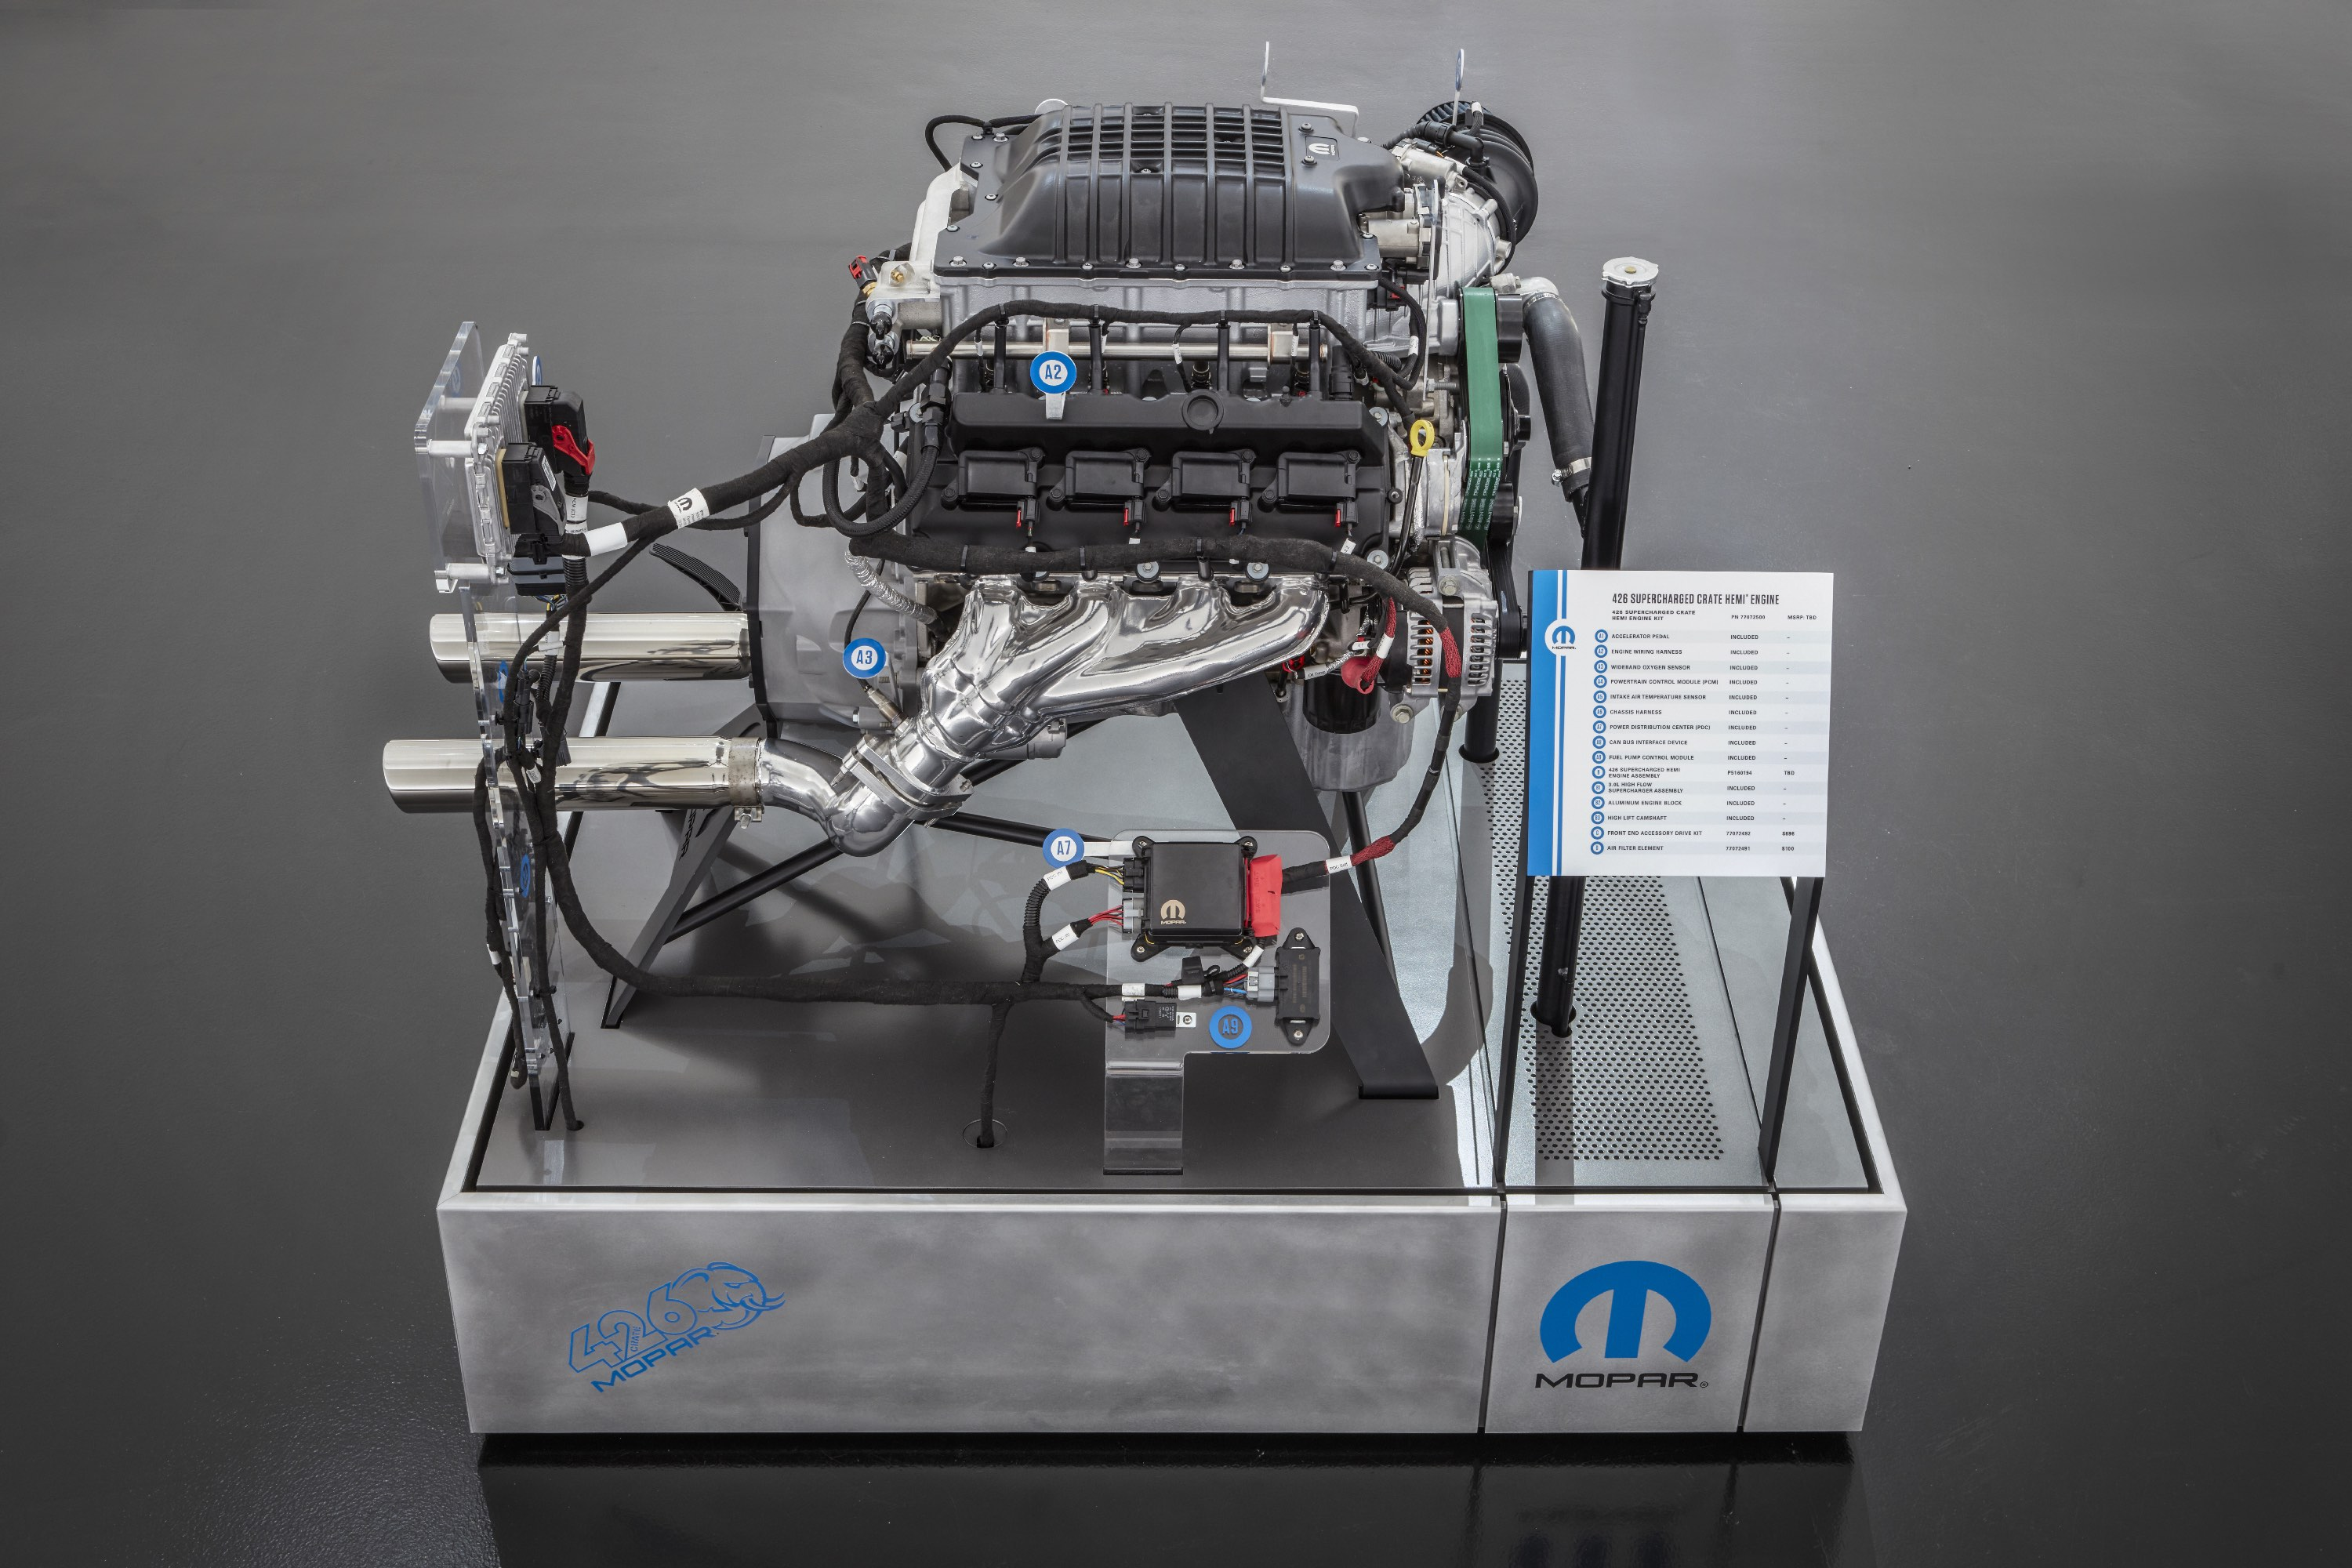 Hellephant Crate engine 1000 hp  side